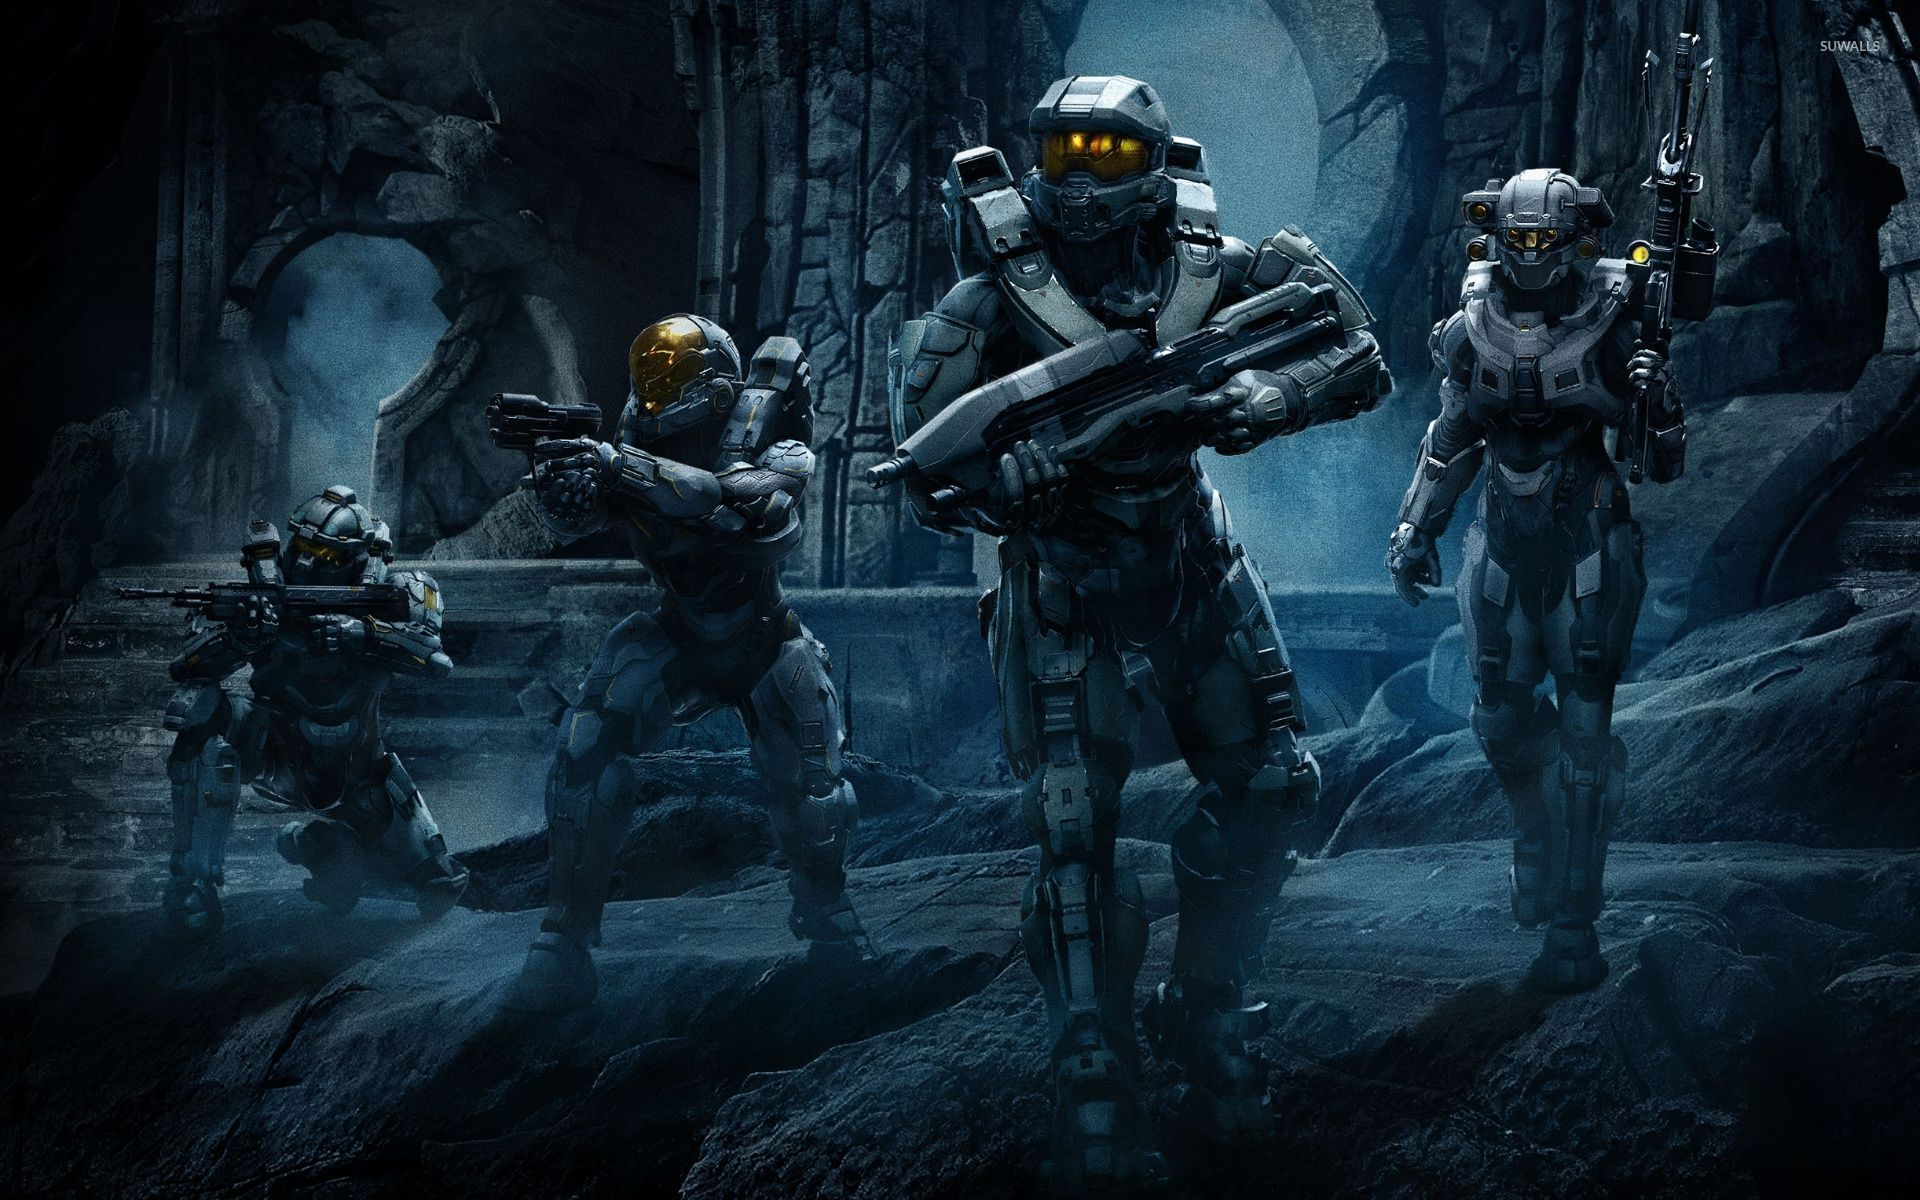 Halo 5 Guardians wallpaper   Game wallpapers   46160 1366x768